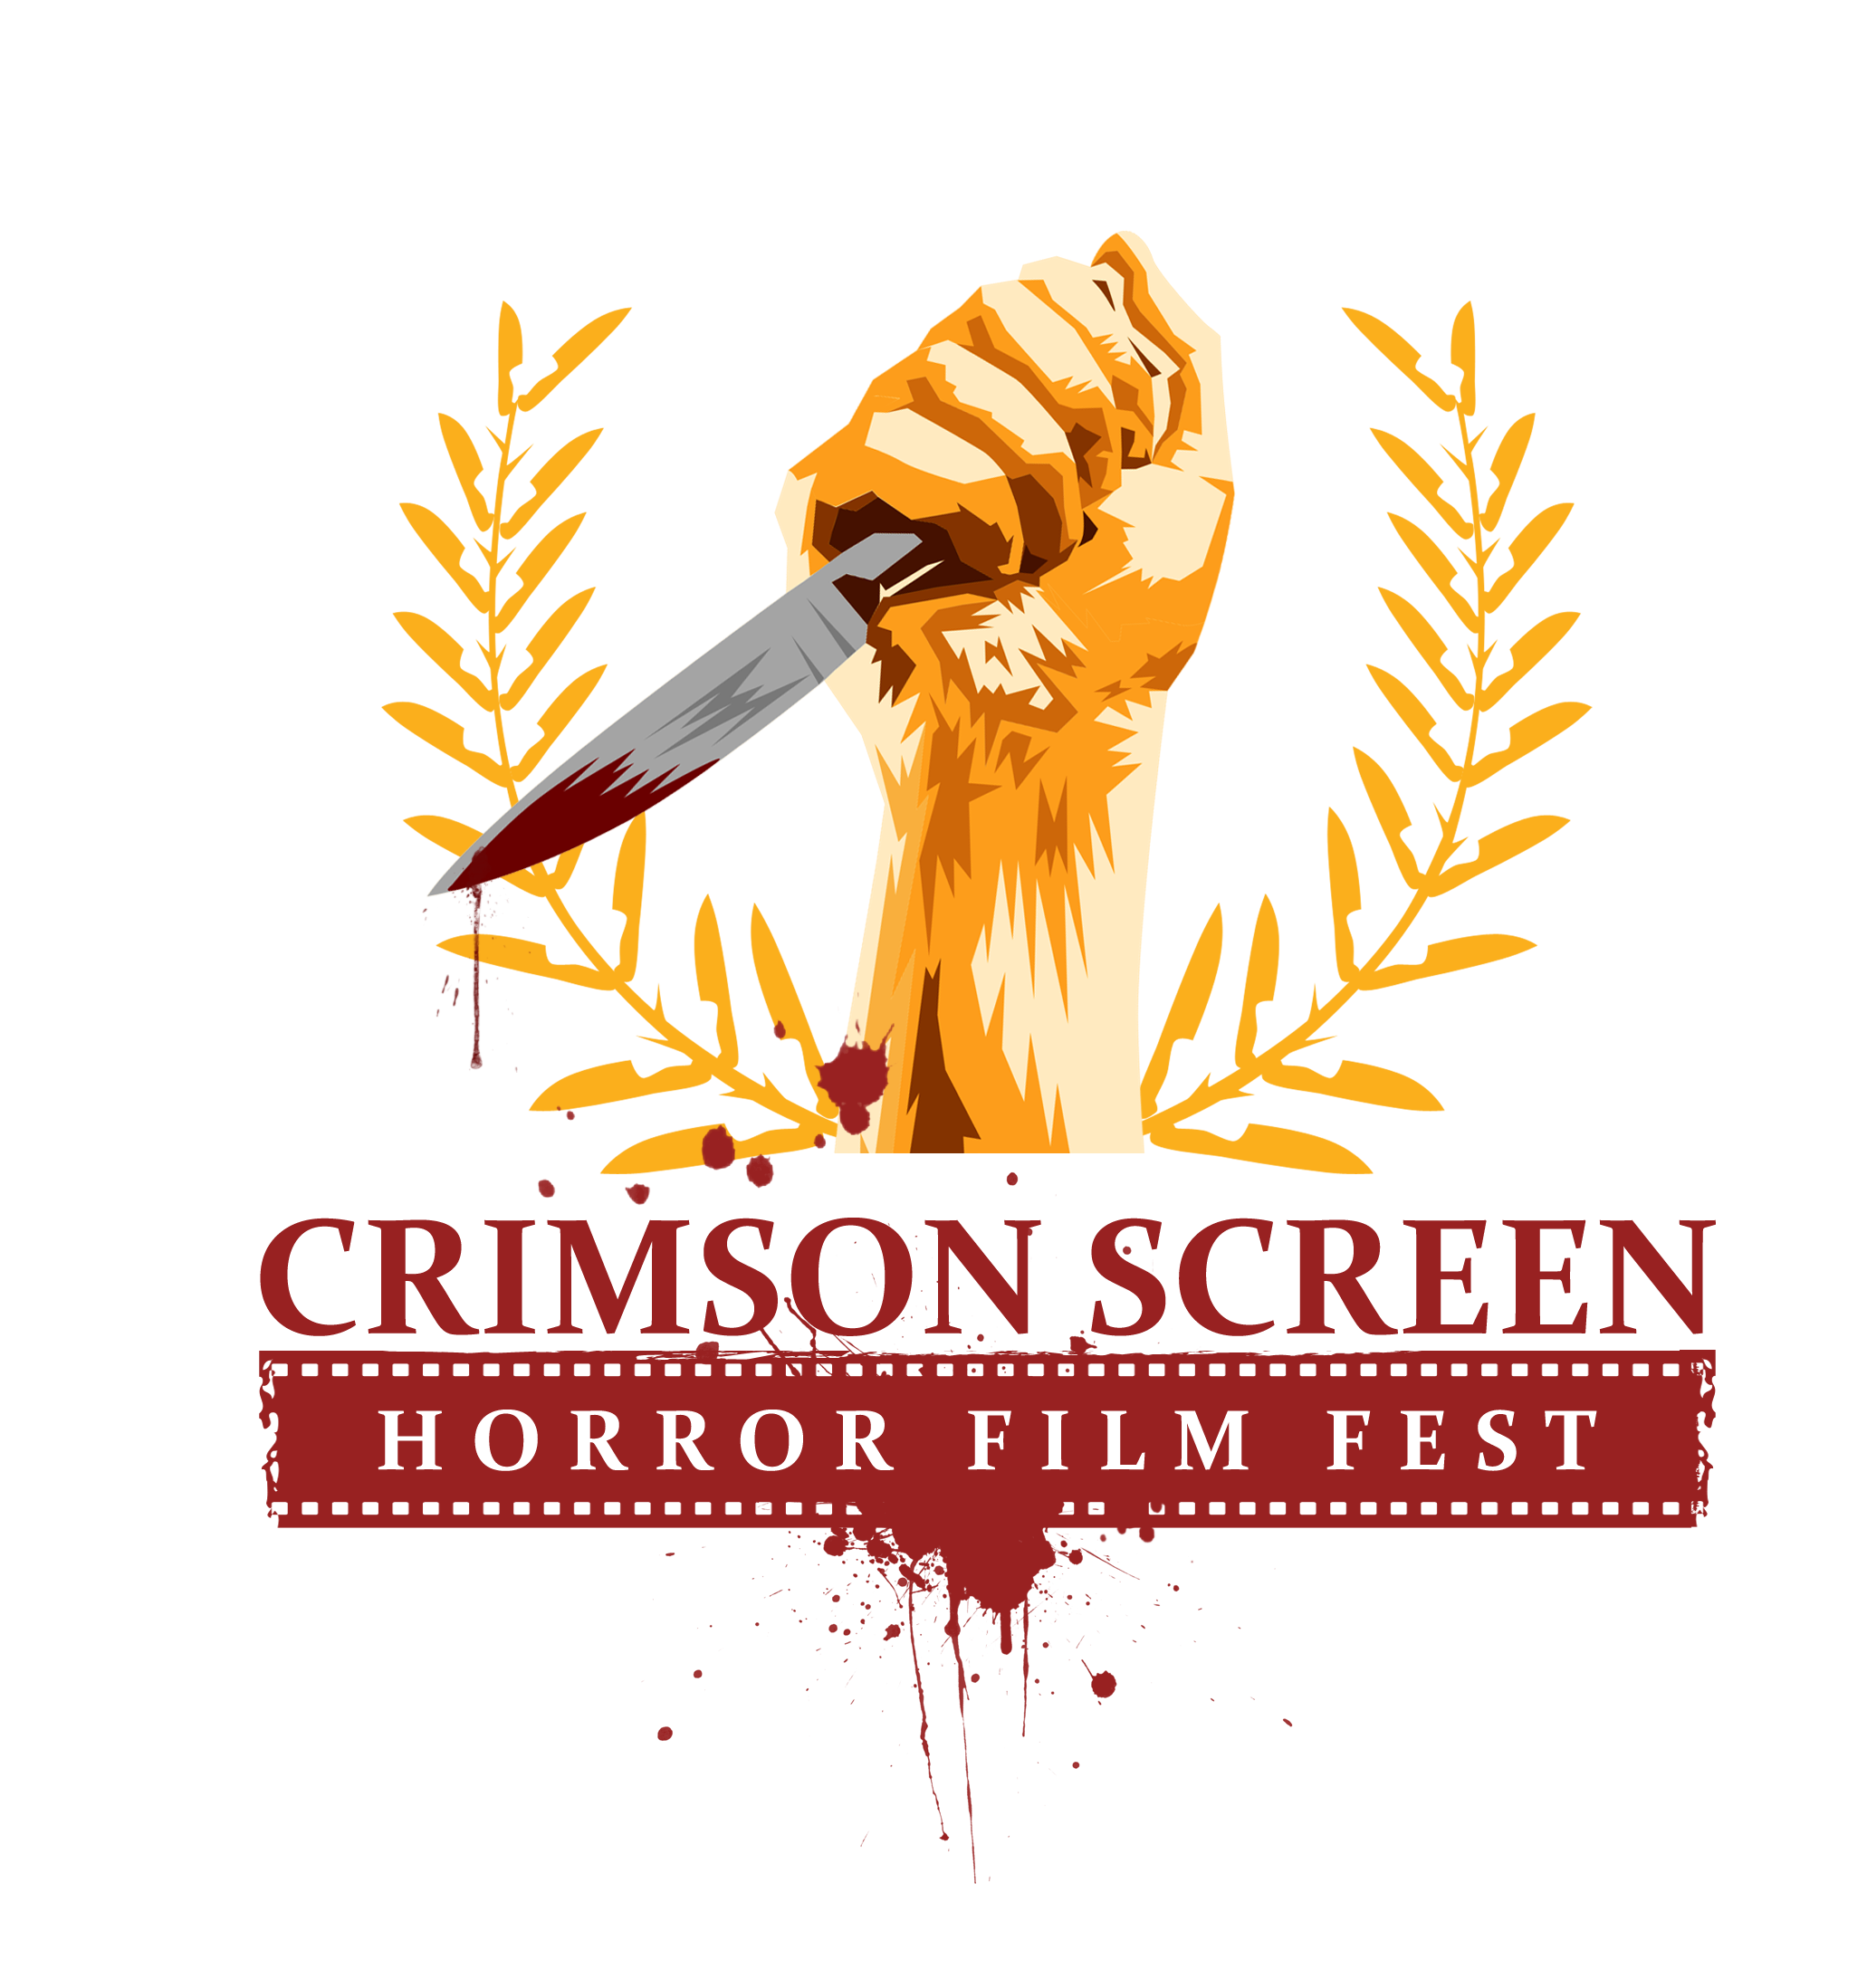 crimson_horror_fest_44.png